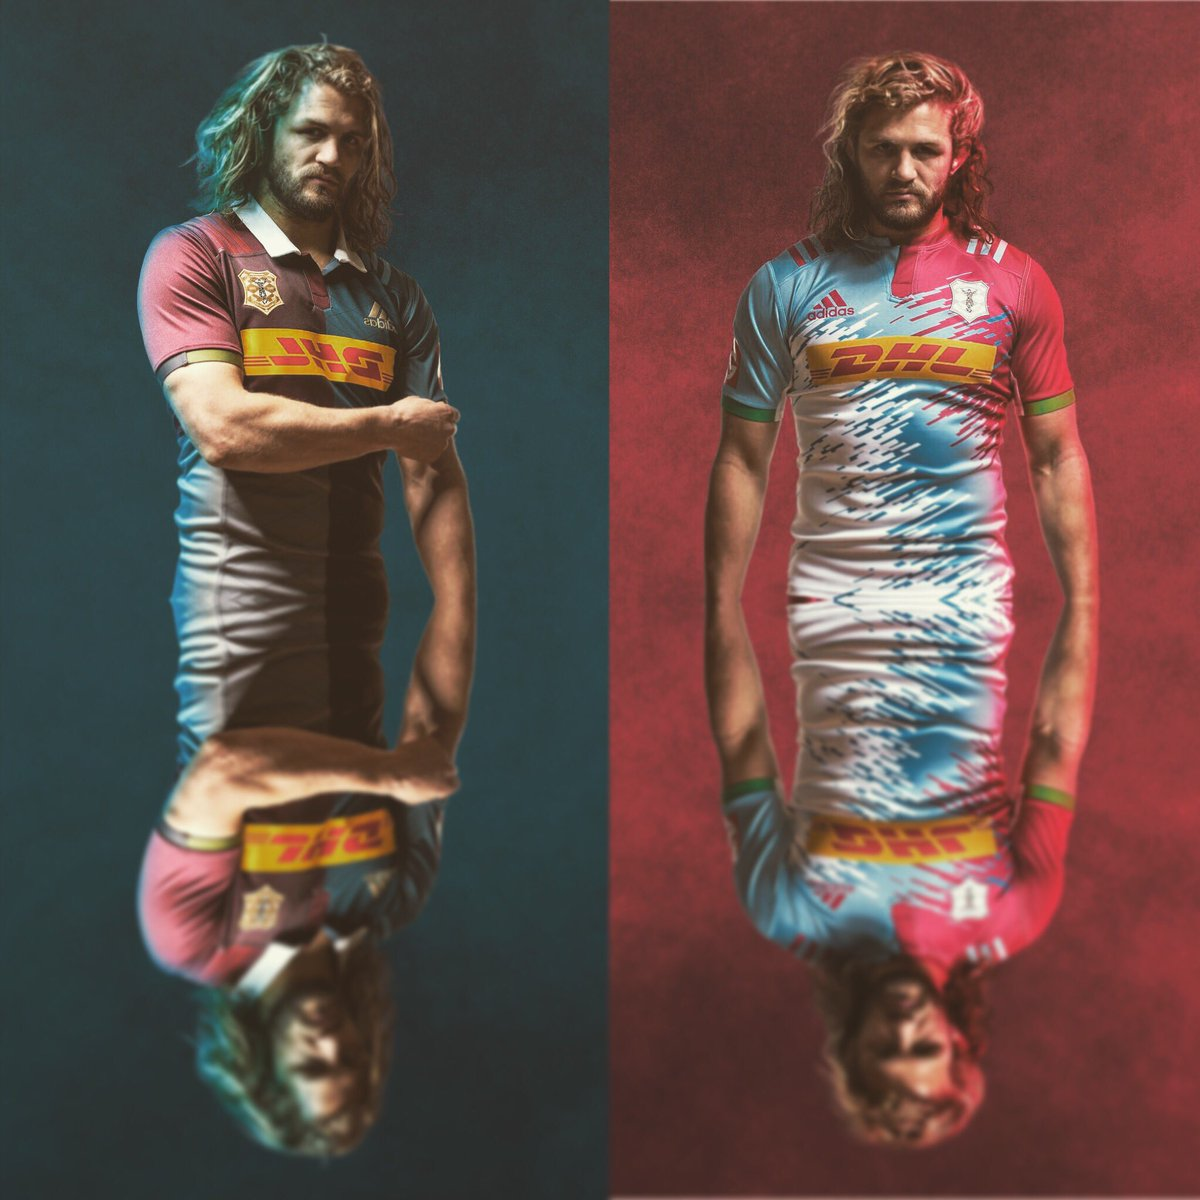 Home and away #harlequins150 @adidasuk @harlequinsrugby https://t.co/SN8A4nWJuO